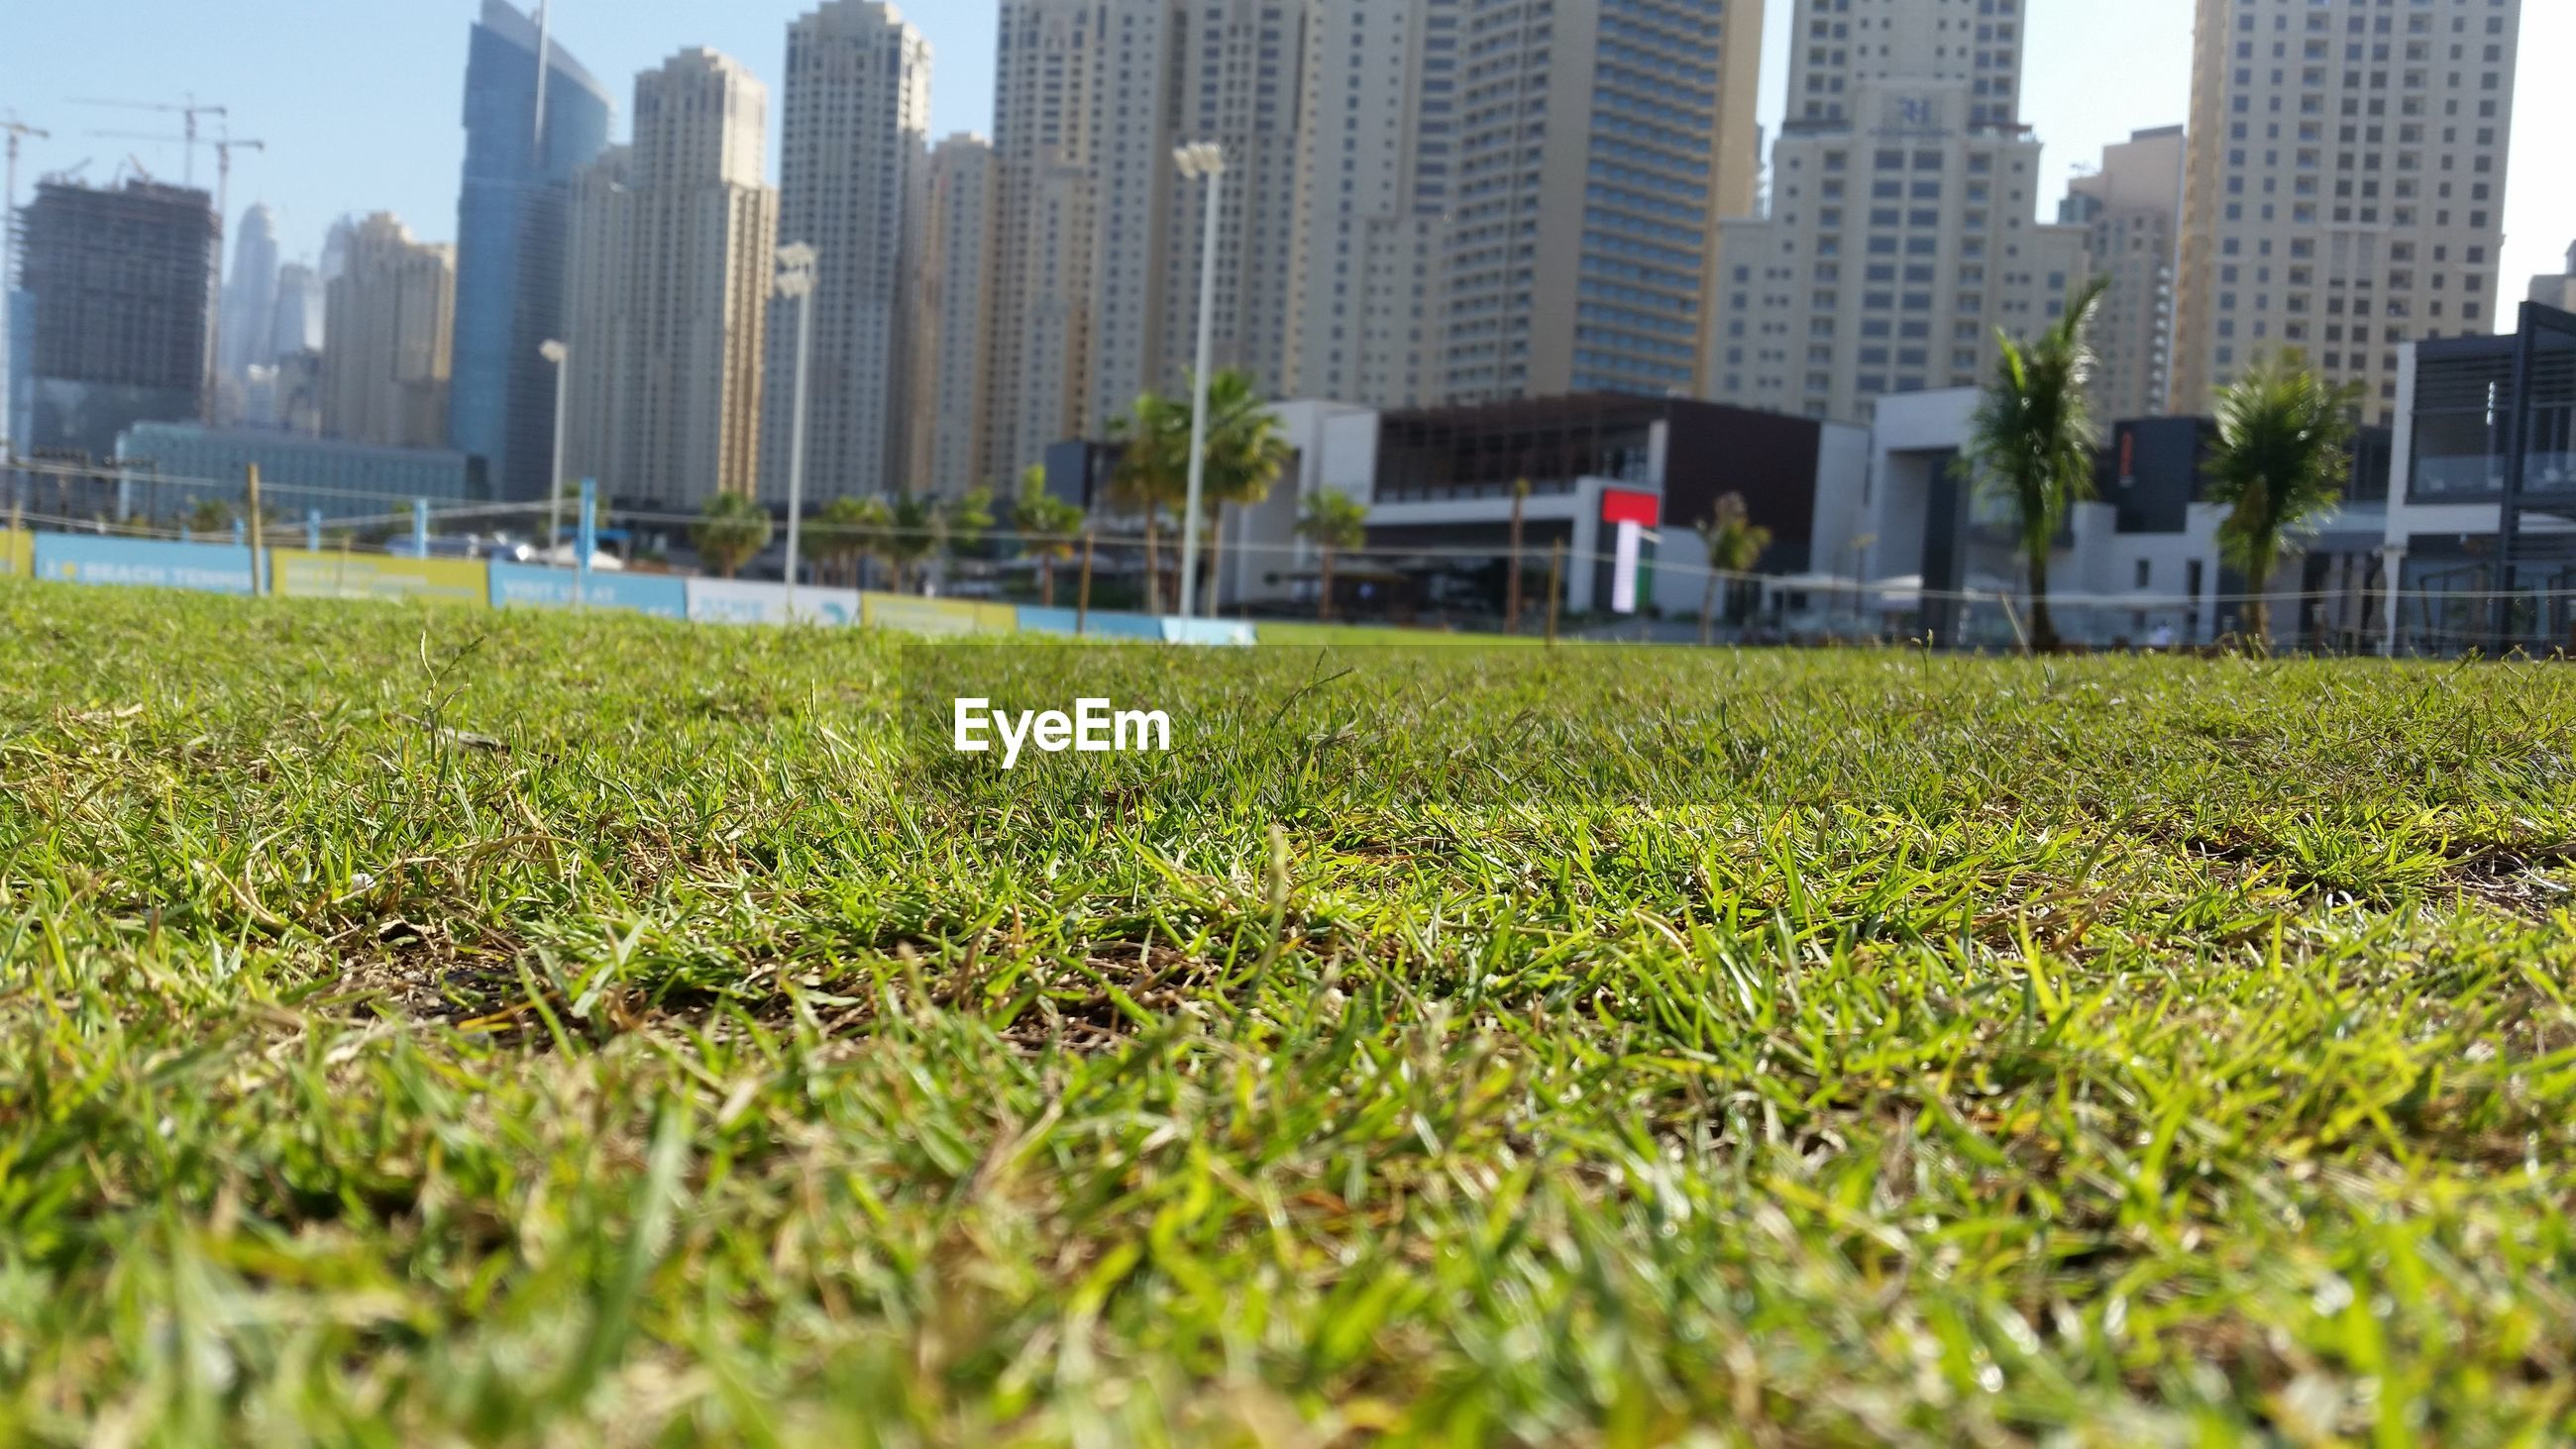 building exterior, architecture, built structure, grass, city, growth, green color, selective focus, lawn, surface level, building, field, plant, day, focus on background, incidental people, outdoors, focus on foreground, transportation, city life